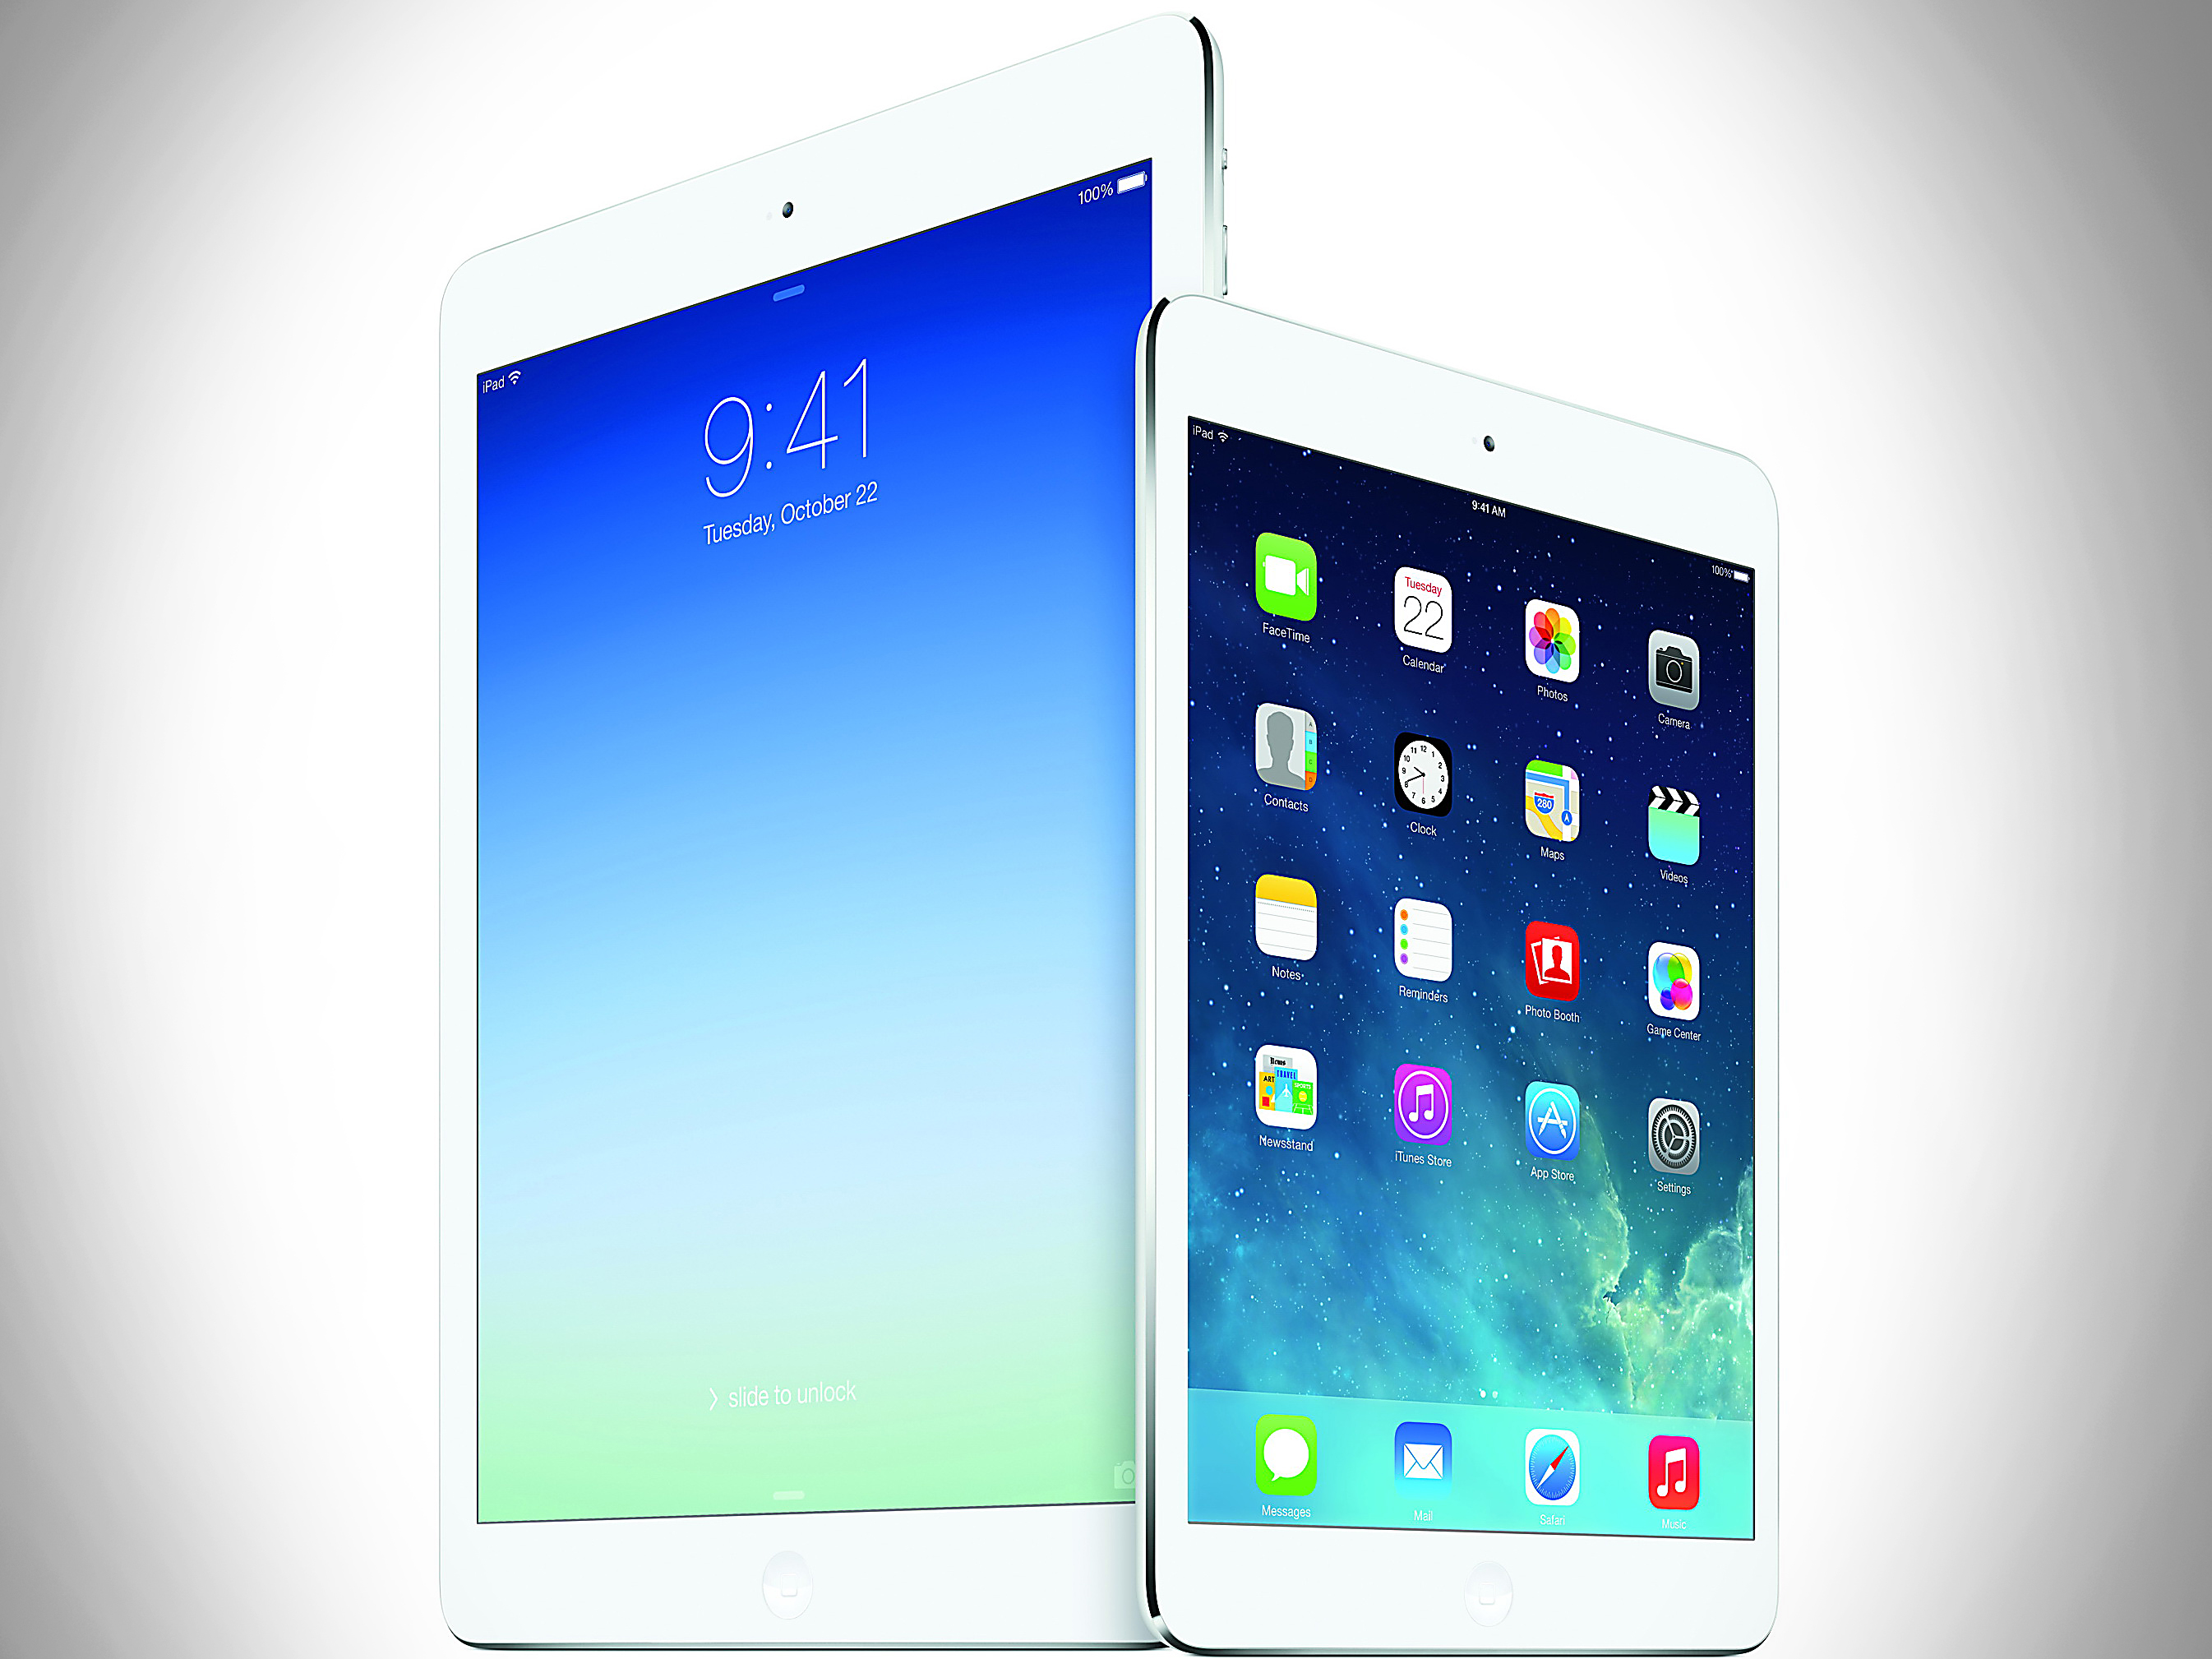 apple neues ipad air im oktober ipad mini retina anfang 2015 news. Black Bedroom Furniture Sets. Home Design Ideas